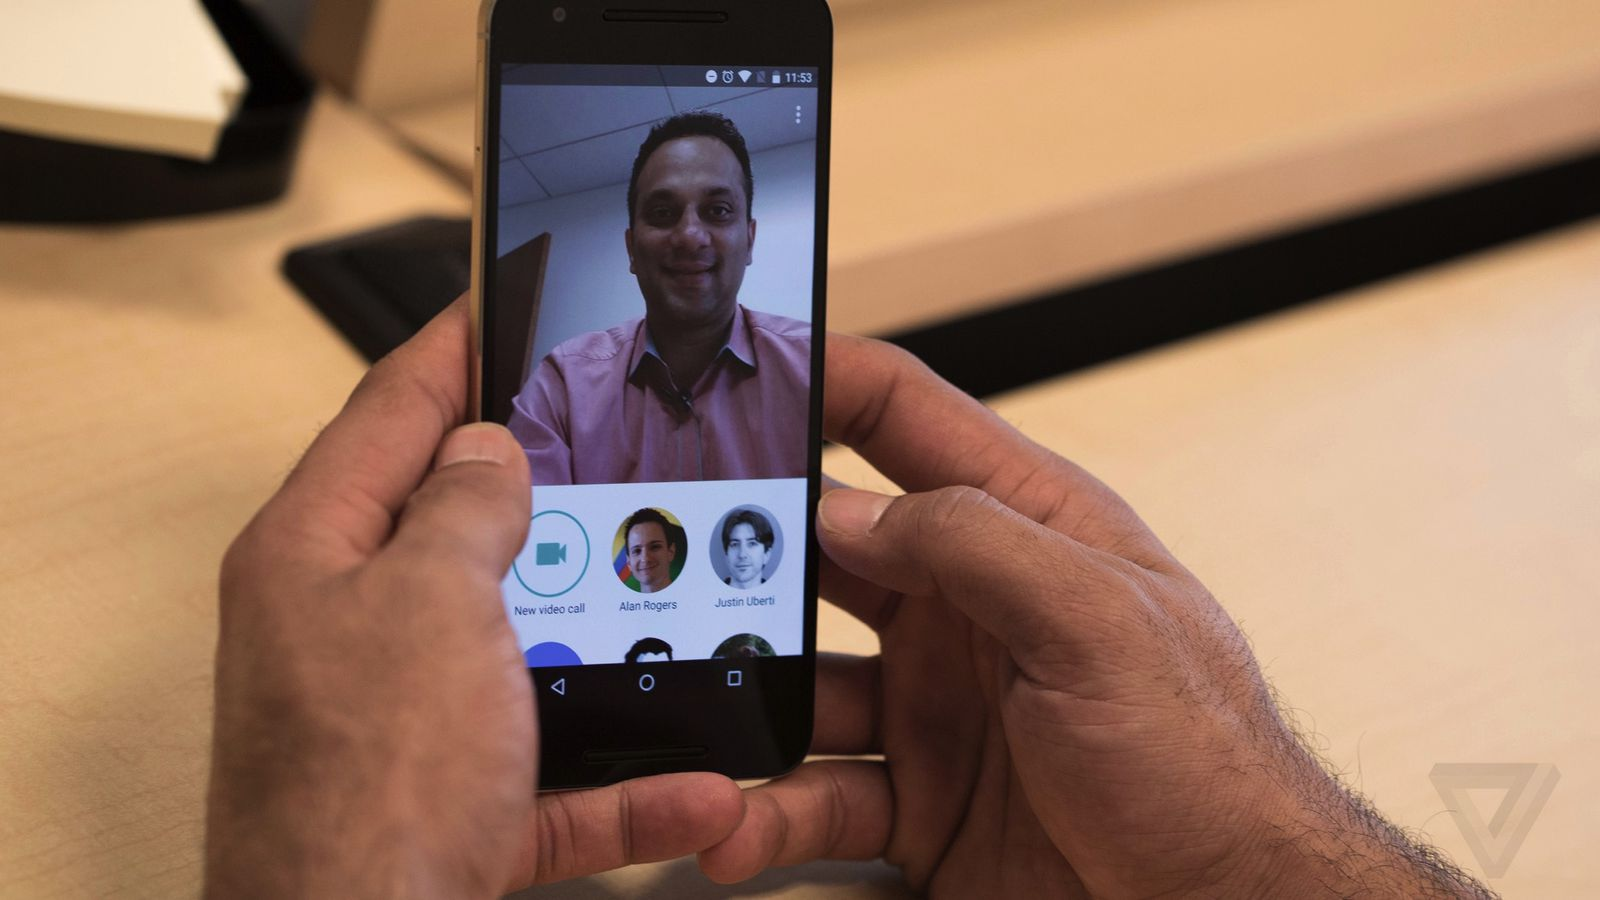 google duo makes mobile video calls fast and simple